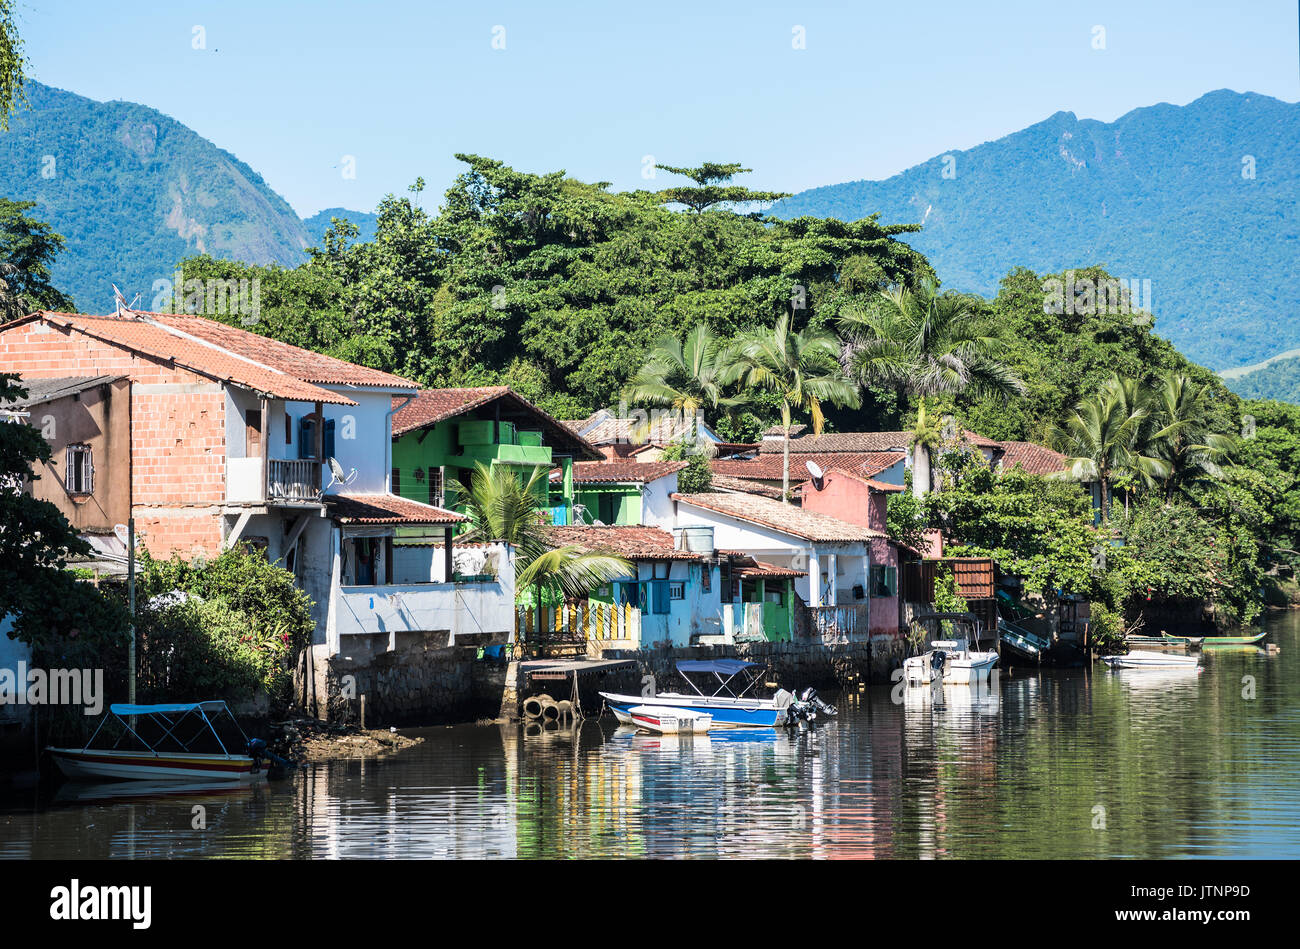 Paraty, Brazil - February 24, 2017: View of the canal and the colonial houses of the historic town Paraty, Rio de Janeiro state, Brazil - Stock Image